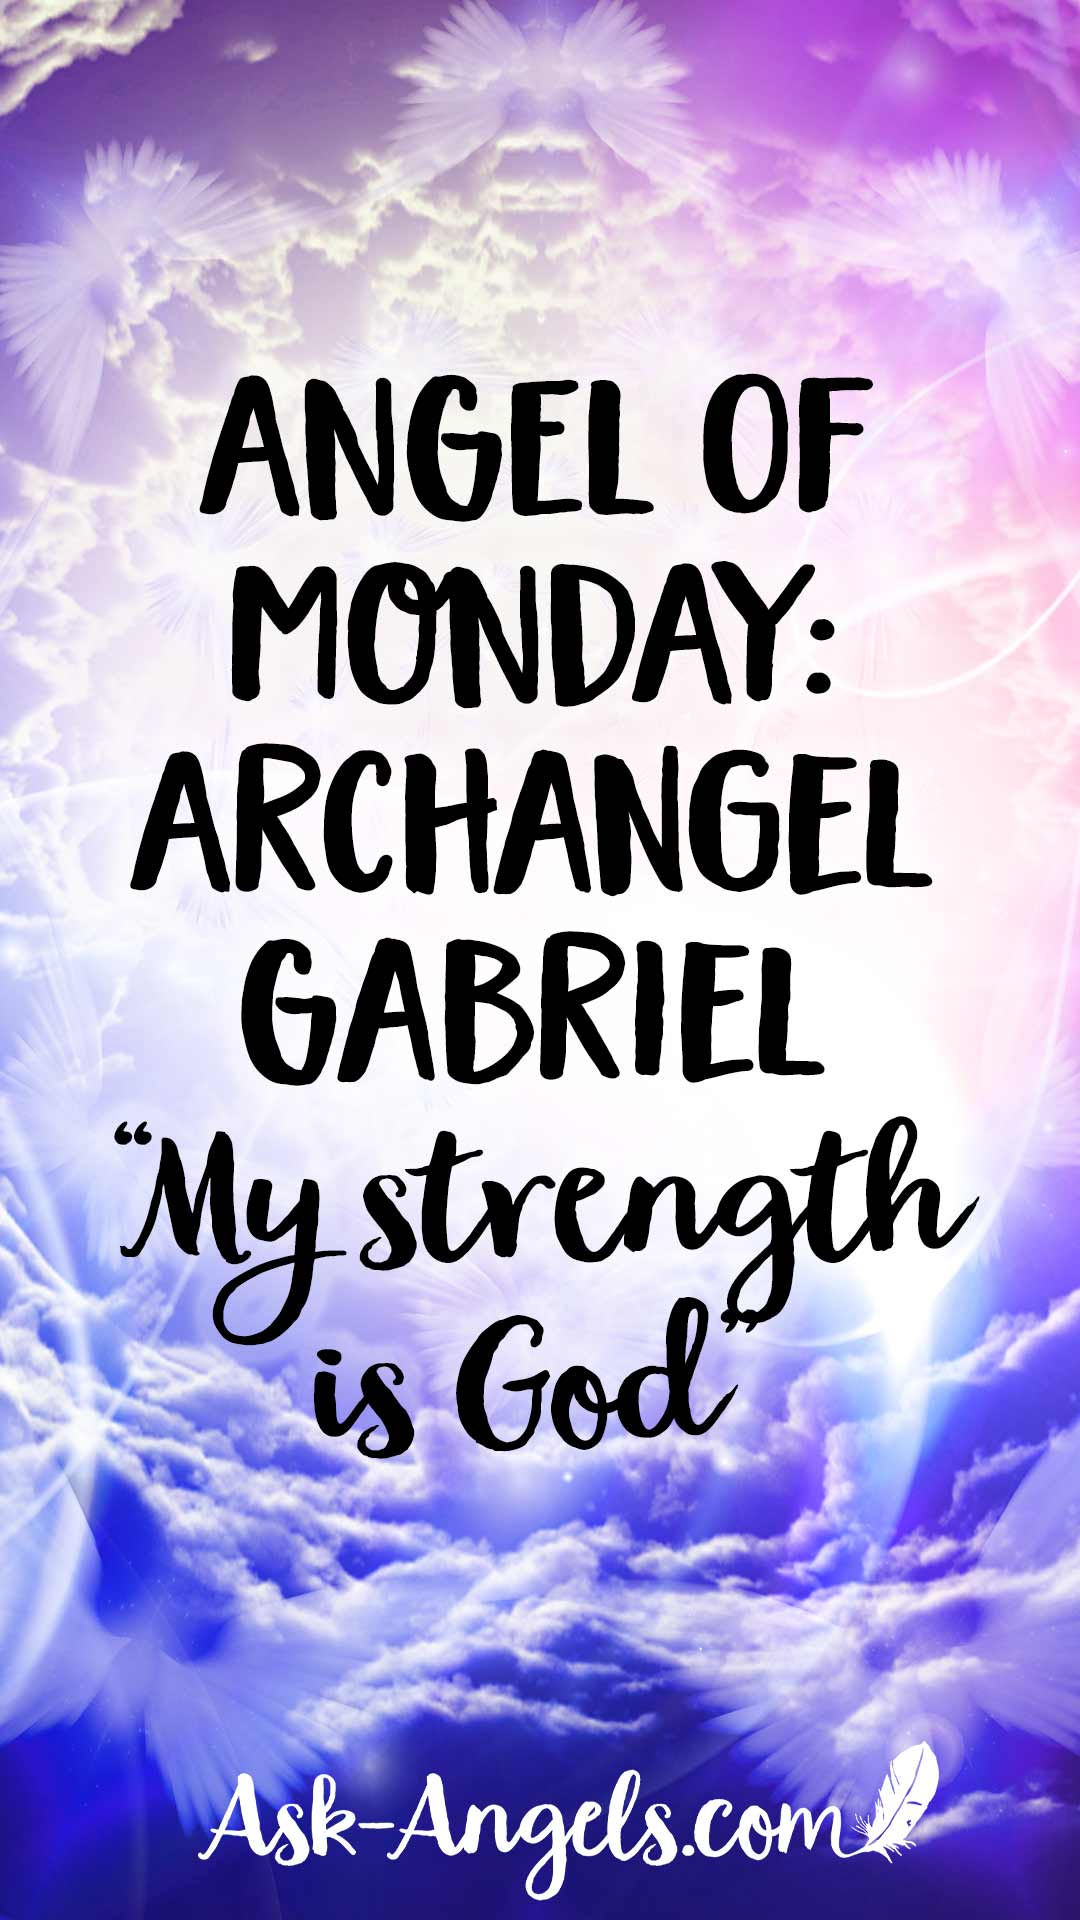 Angel of Monday- Archangel Gabriel- My strength is God